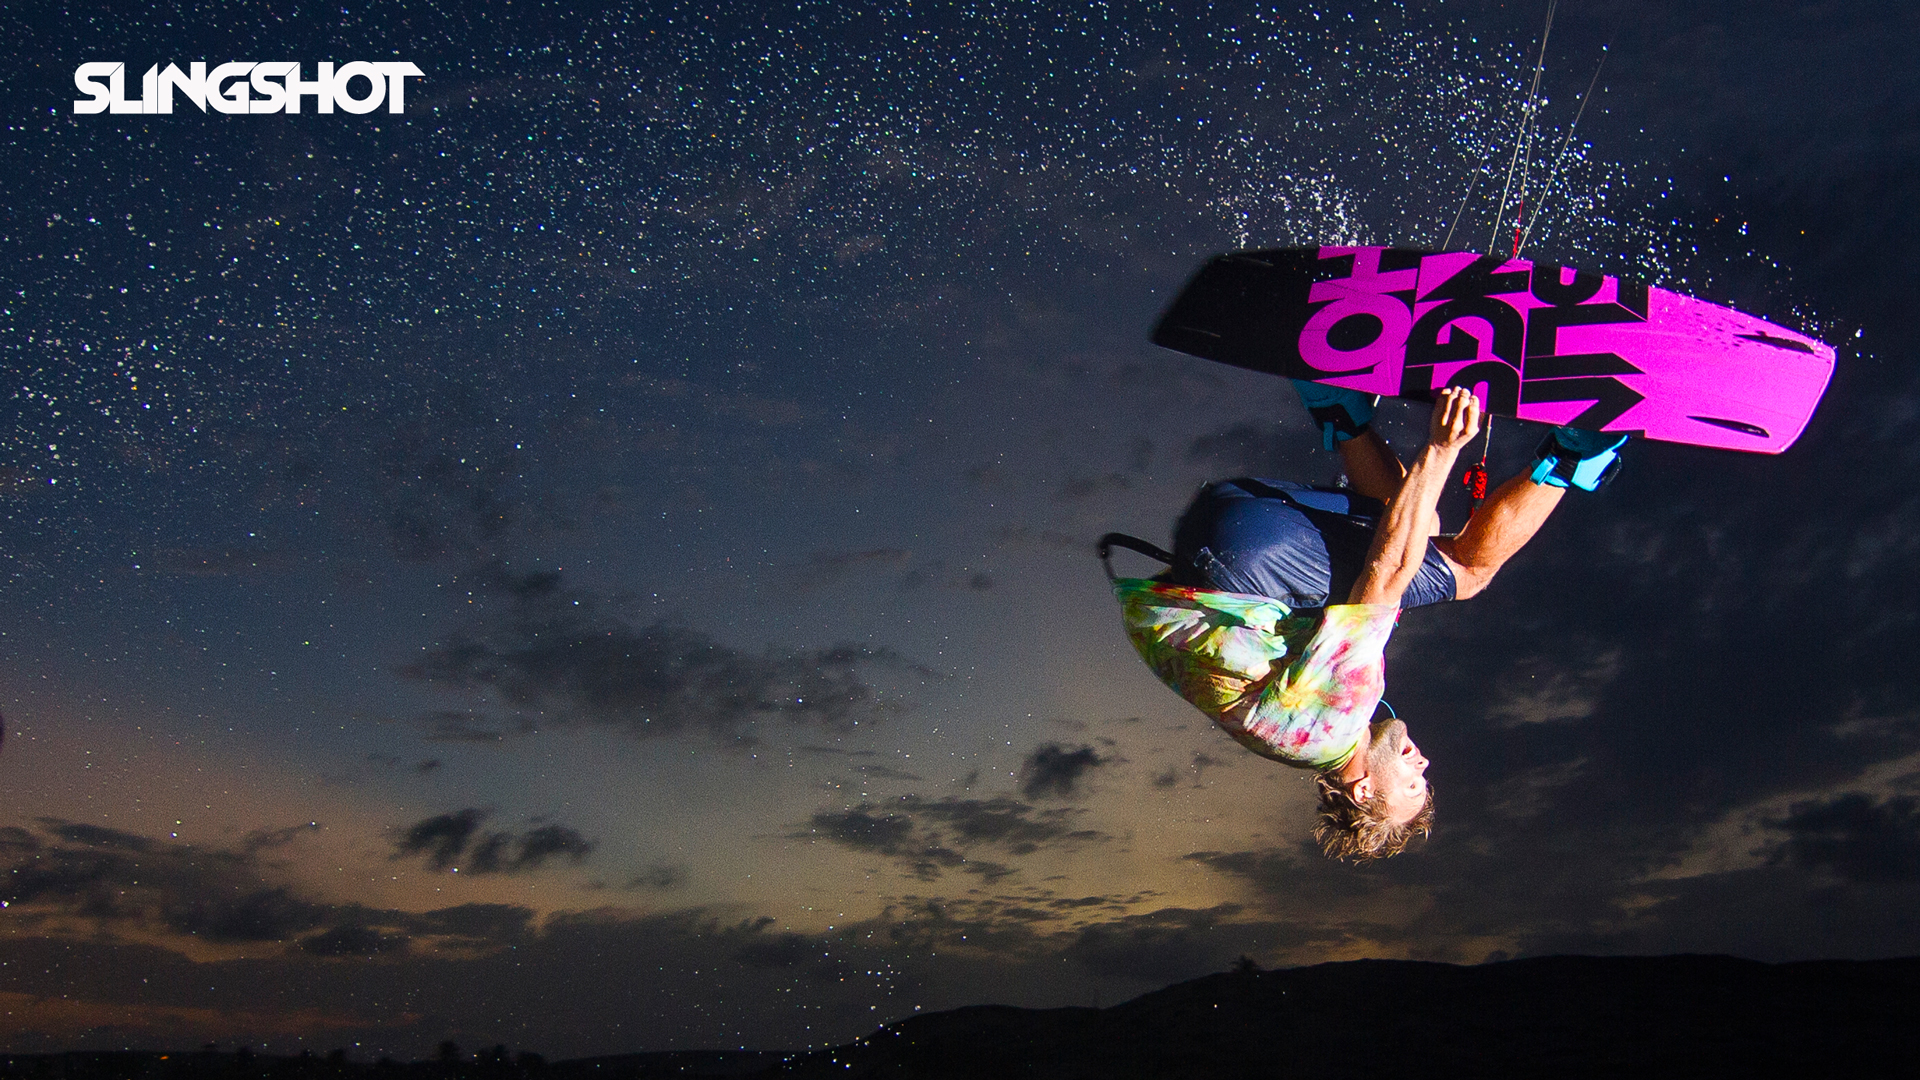 kitesurf wallpaper image - Sam Light on the 2015 Slingshot asylum board. Inverted with a grab kitesurfing. - in resolution: High Definition - HD 16:9 1920 X 1080